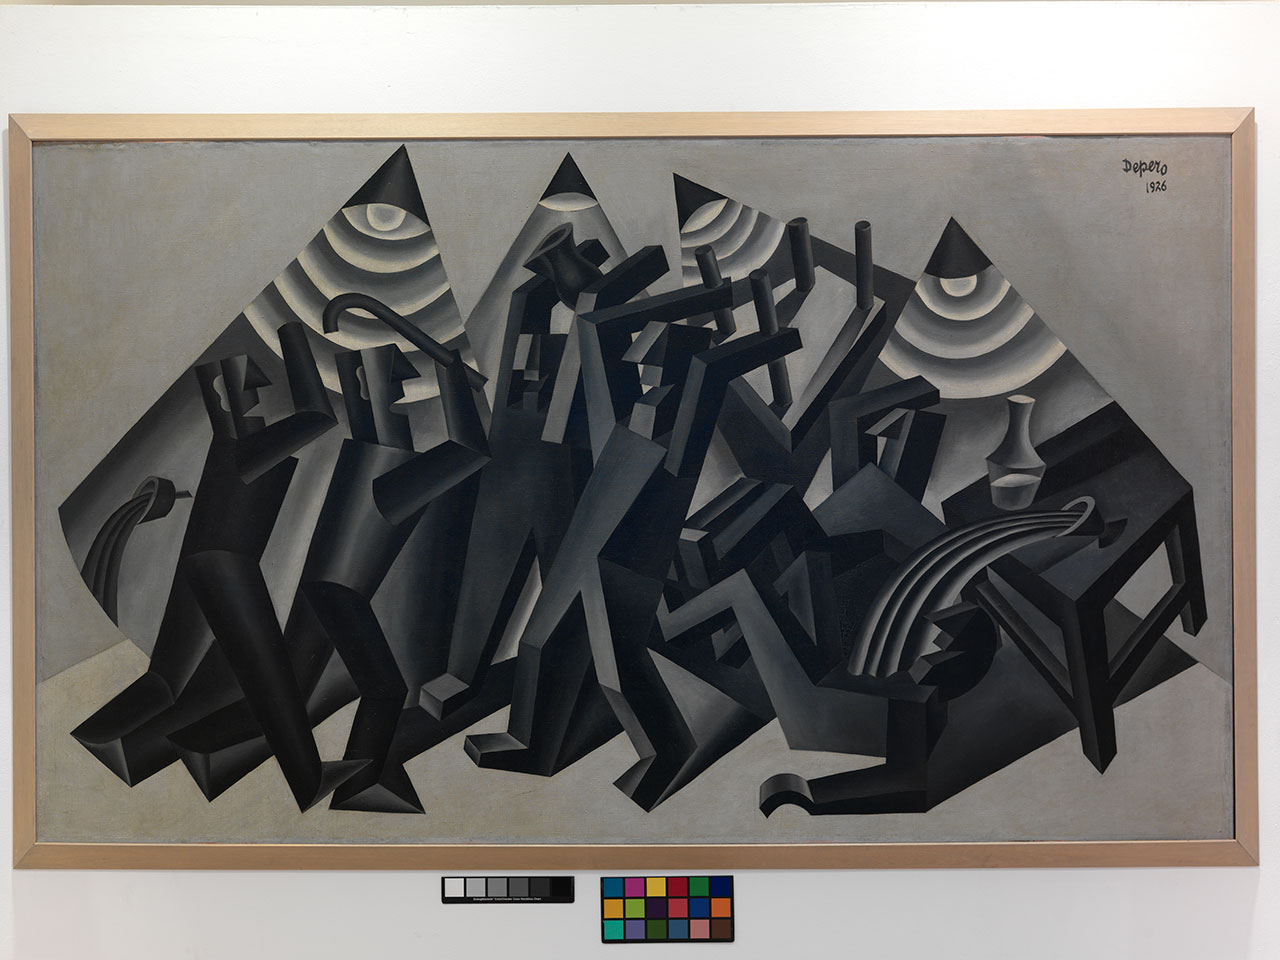 Fortunato Depero, La rissa, 1926. Oil on canvas, 149 x 255 cm MART, Museum of modern and contemporary art of Trento and Rovereto, Fondo Depero MART - Photographic archive and Media Library © Fortunato Depero by SIAE 2018.